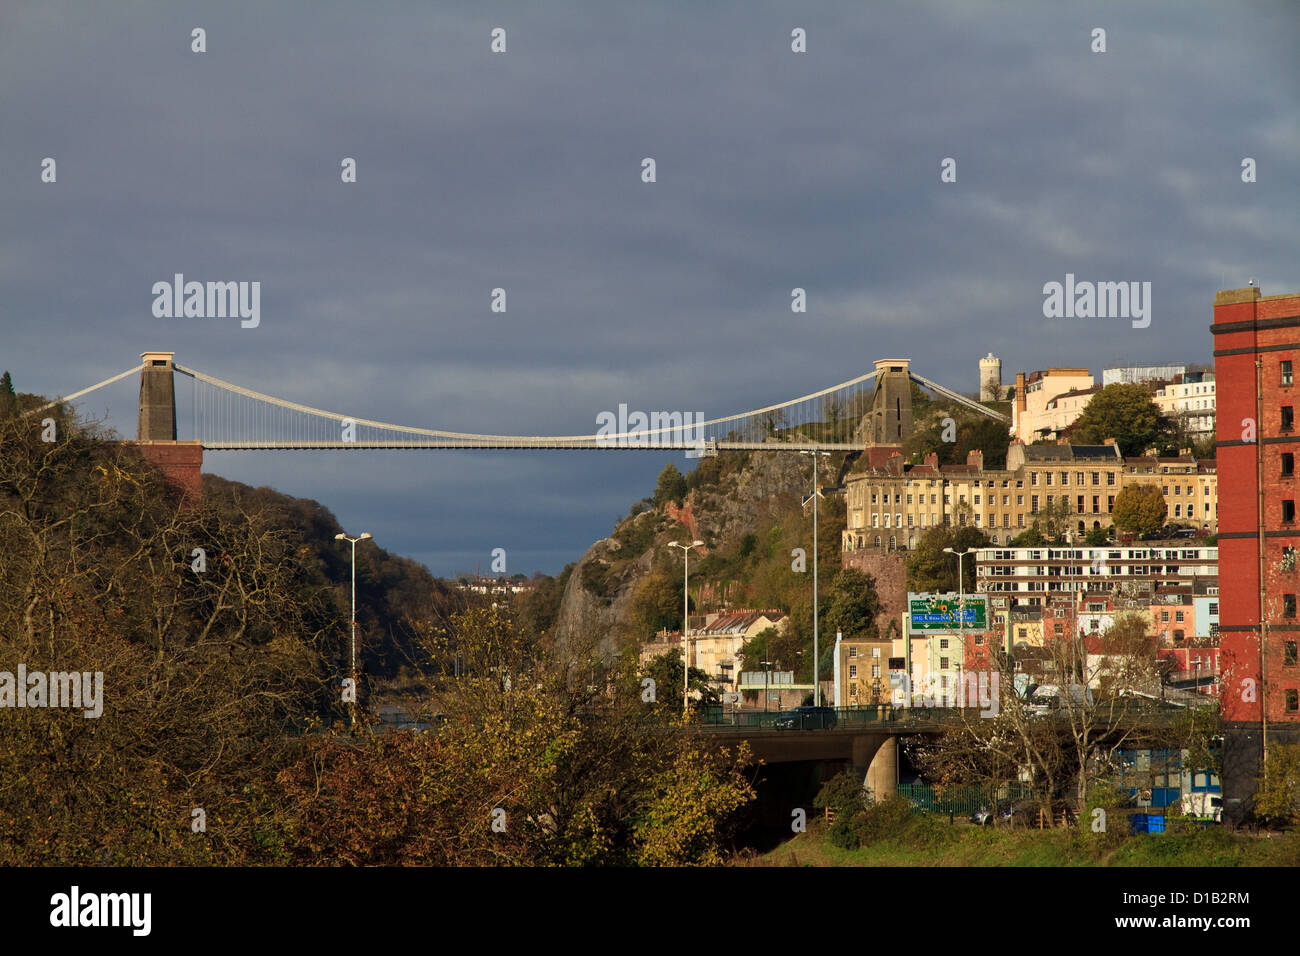 A view of Clifton Suspension Bridge, designed by Isambard Kingdom Brunel, and spanning the Avon Gorge - Stock Image